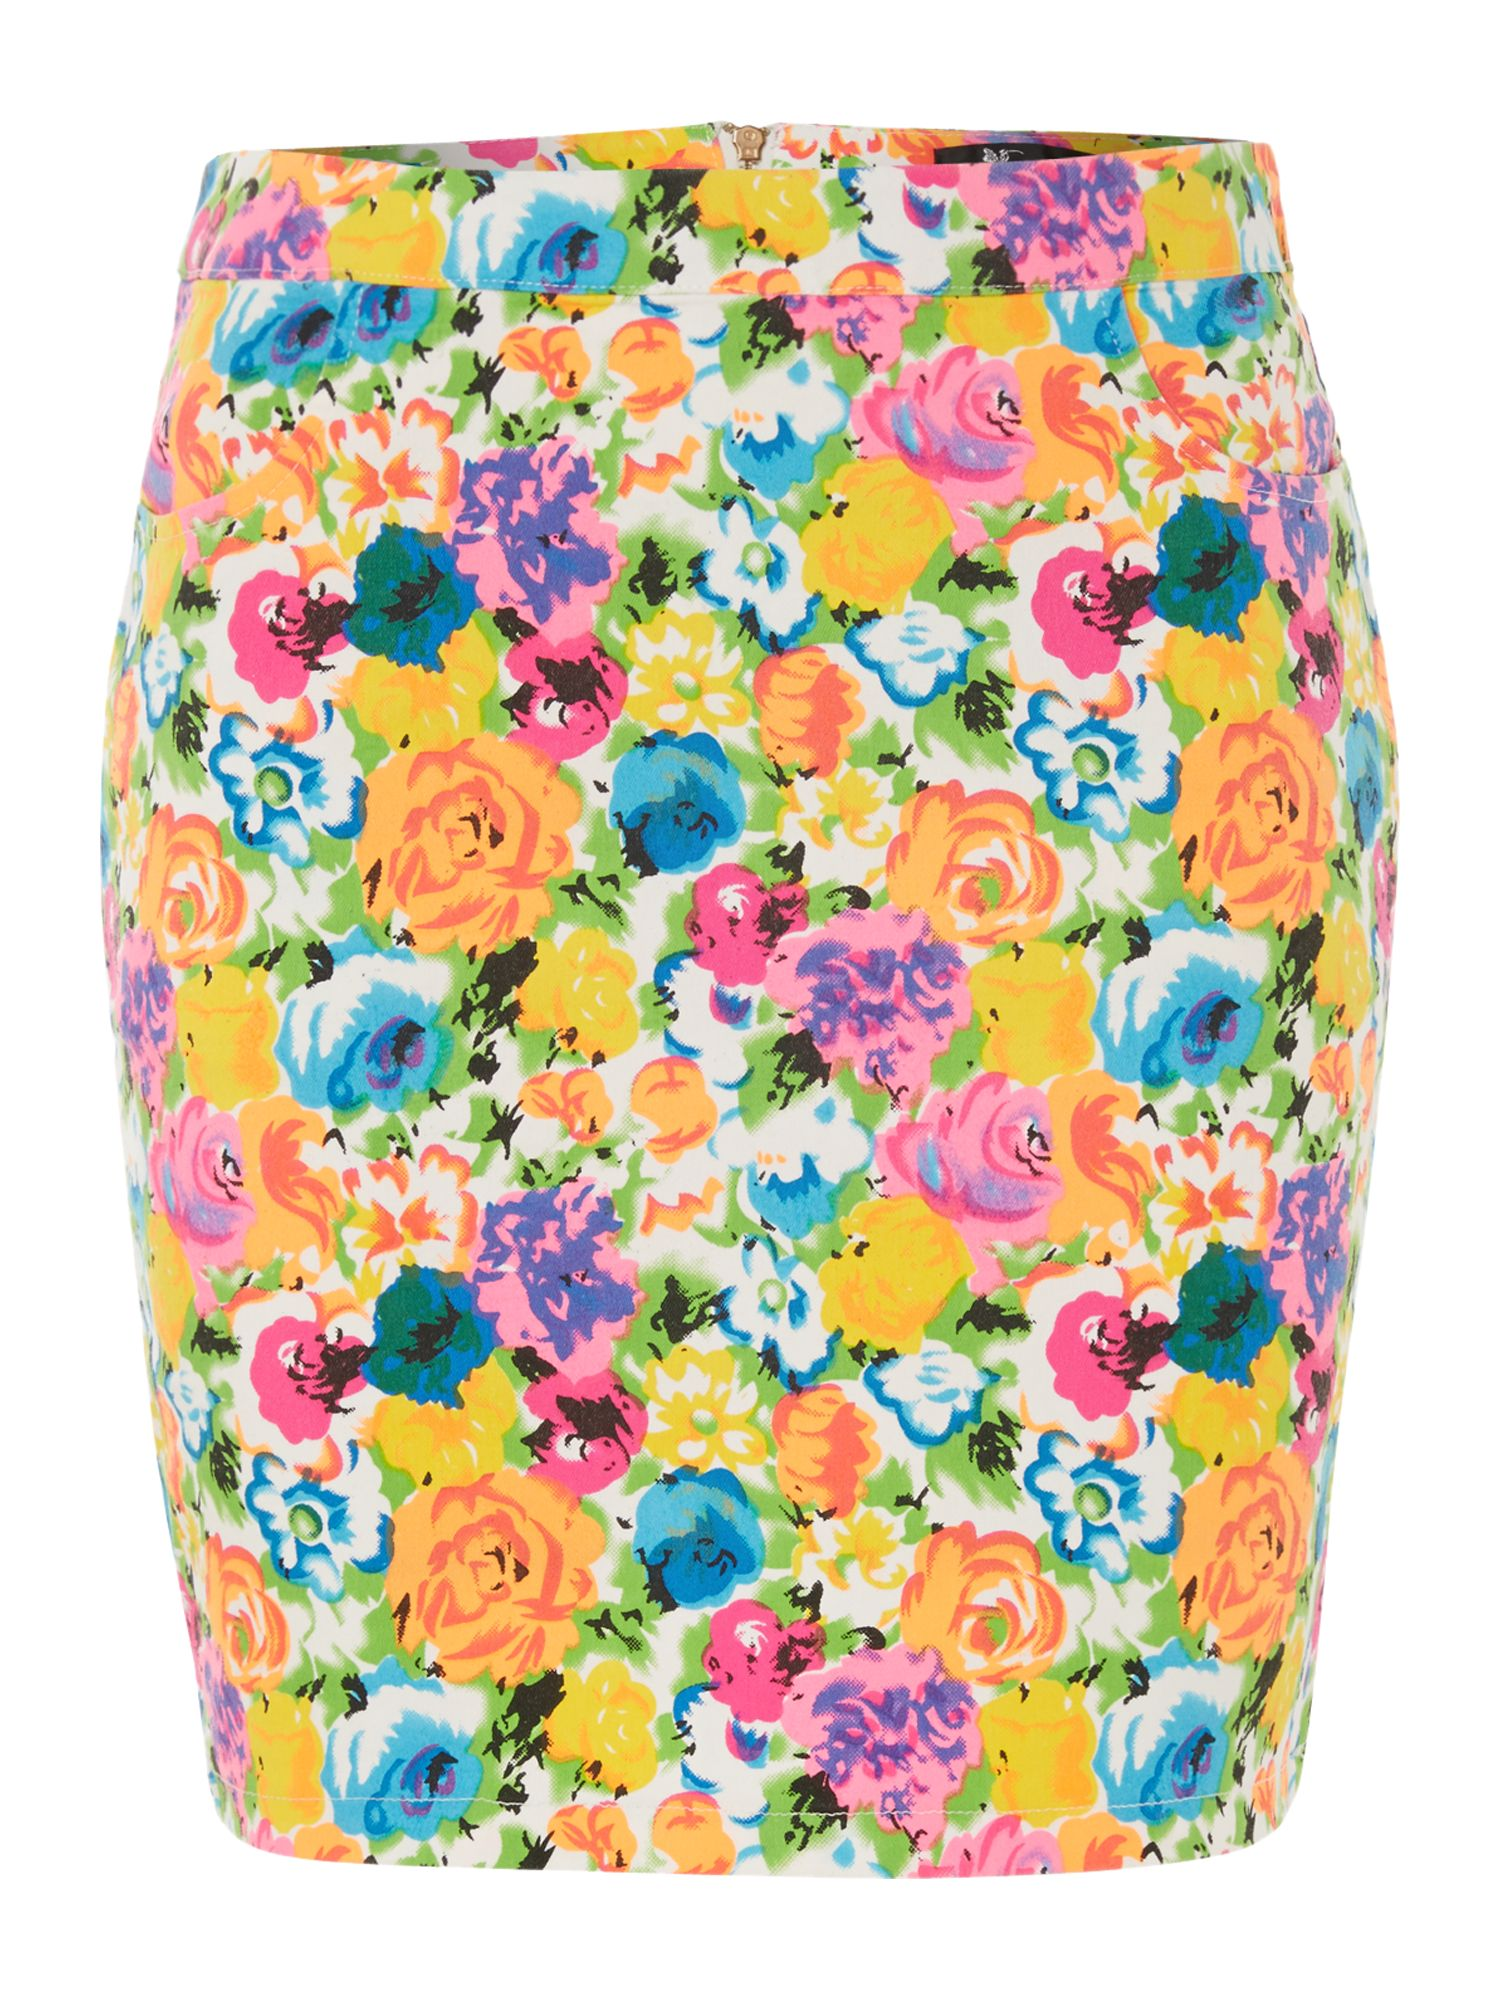 Graphic flower print skirt